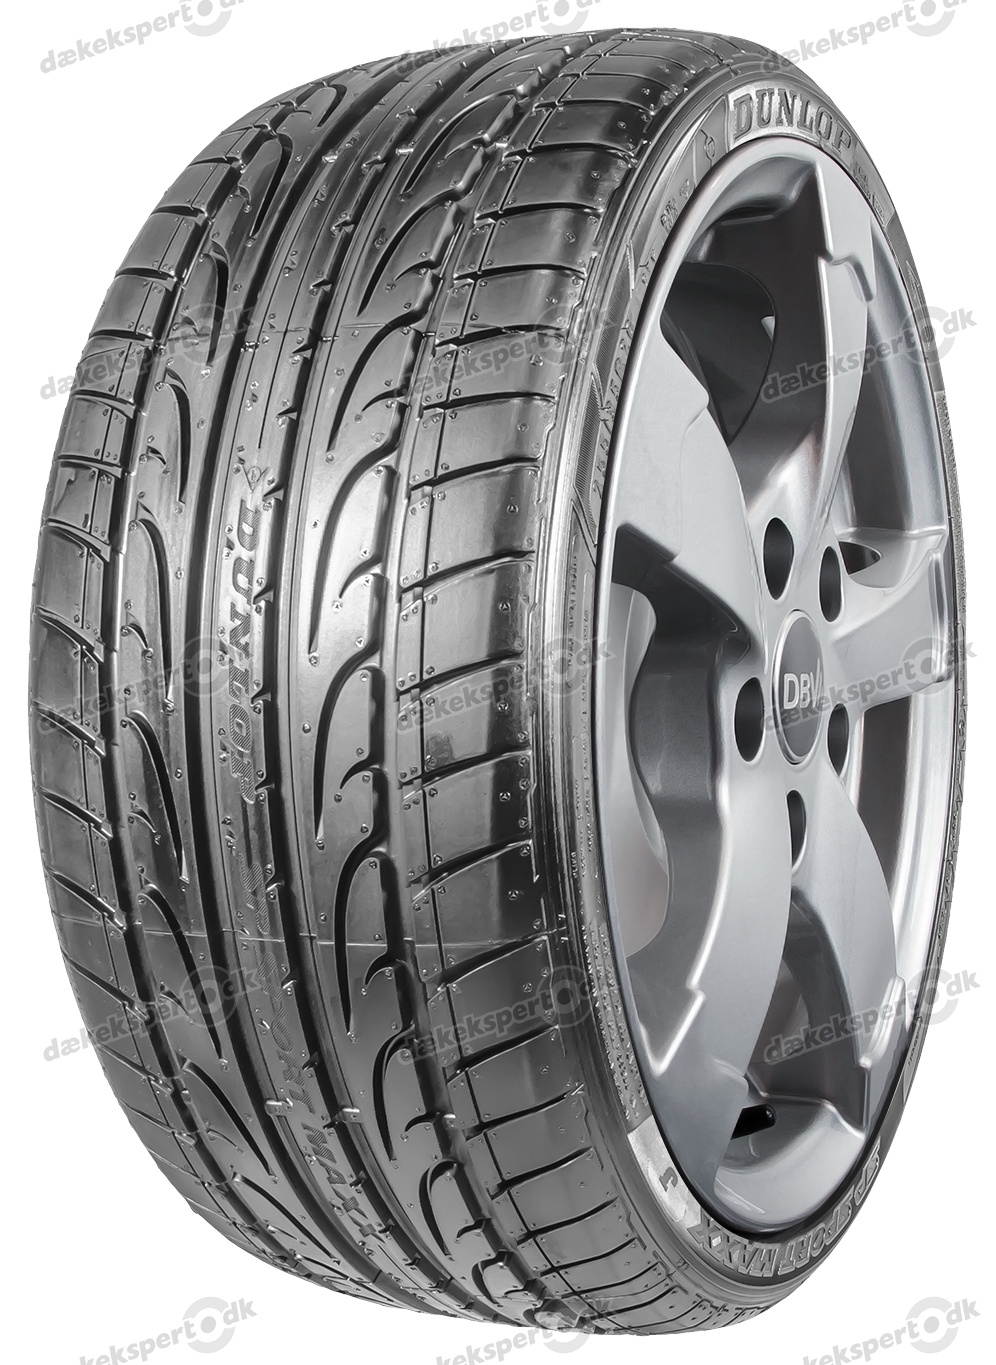 275/30 ZR19 (96Y) SP Sport Maxx XL  SP Sport Maxx XL